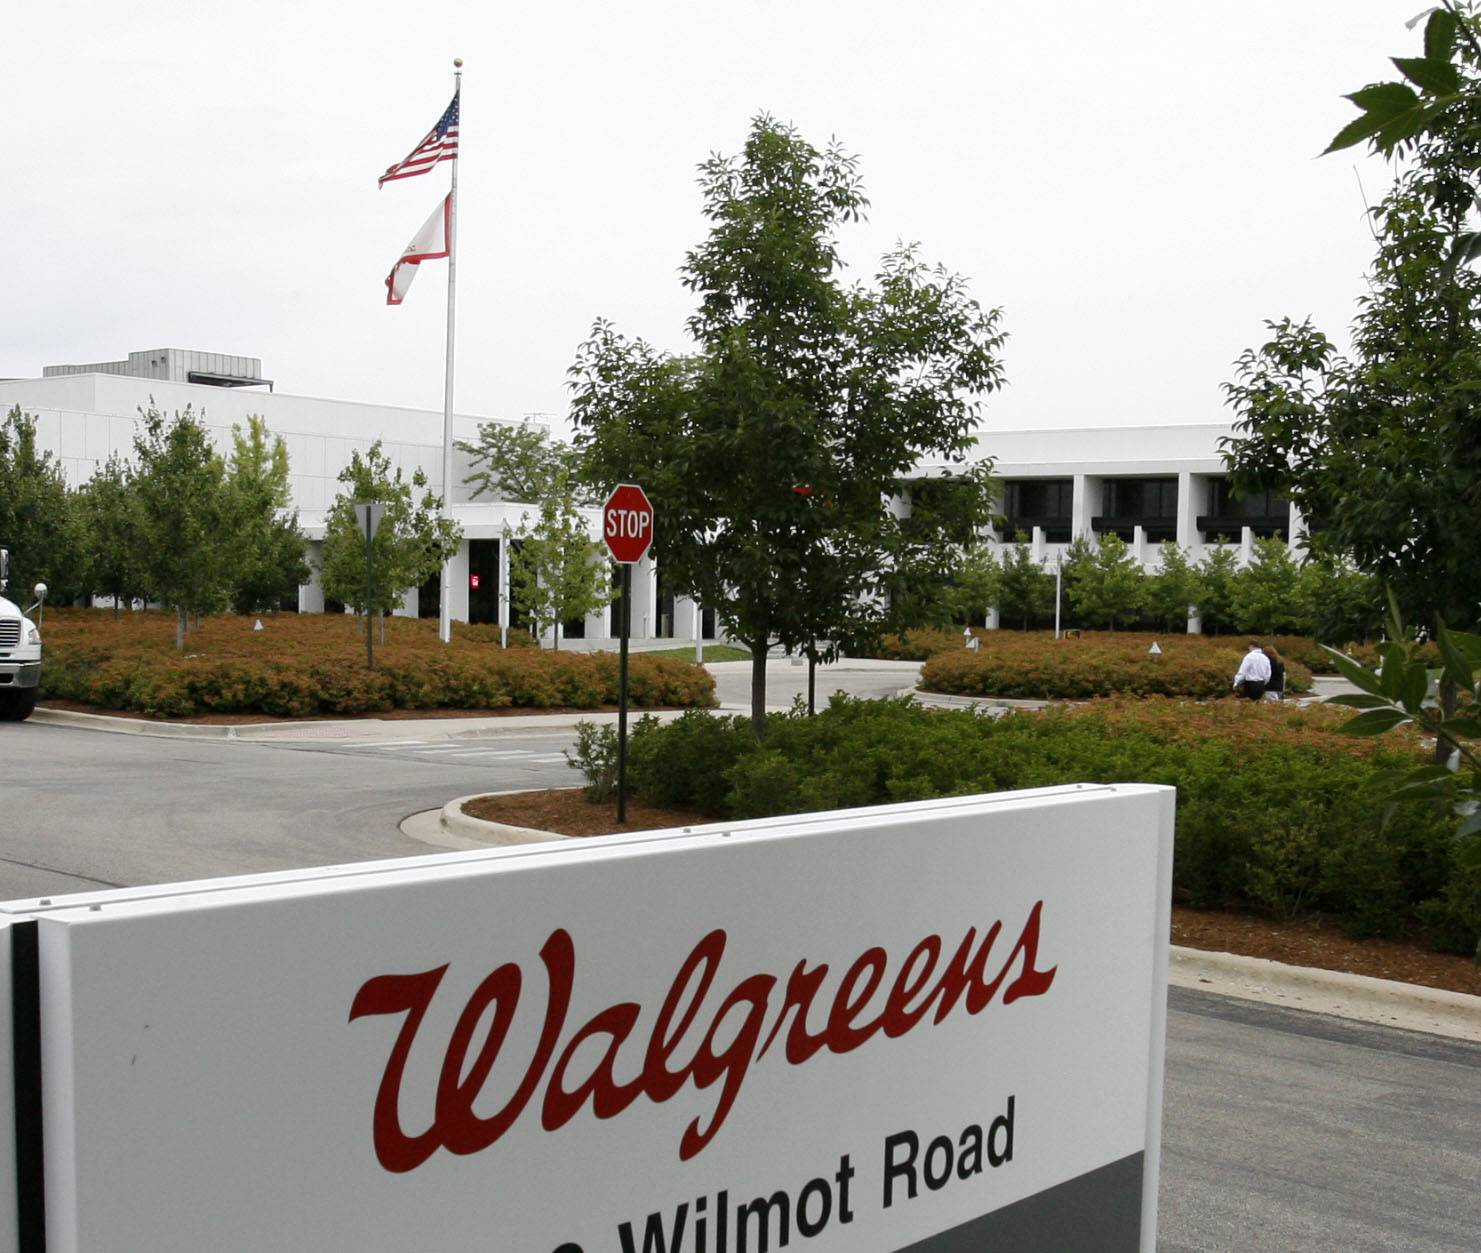 Deerfield-based  Walgreen Co. announced its quarterly dividend increased 28.6 percent, the largest quarterly dividend increase in the company's 110-year history.